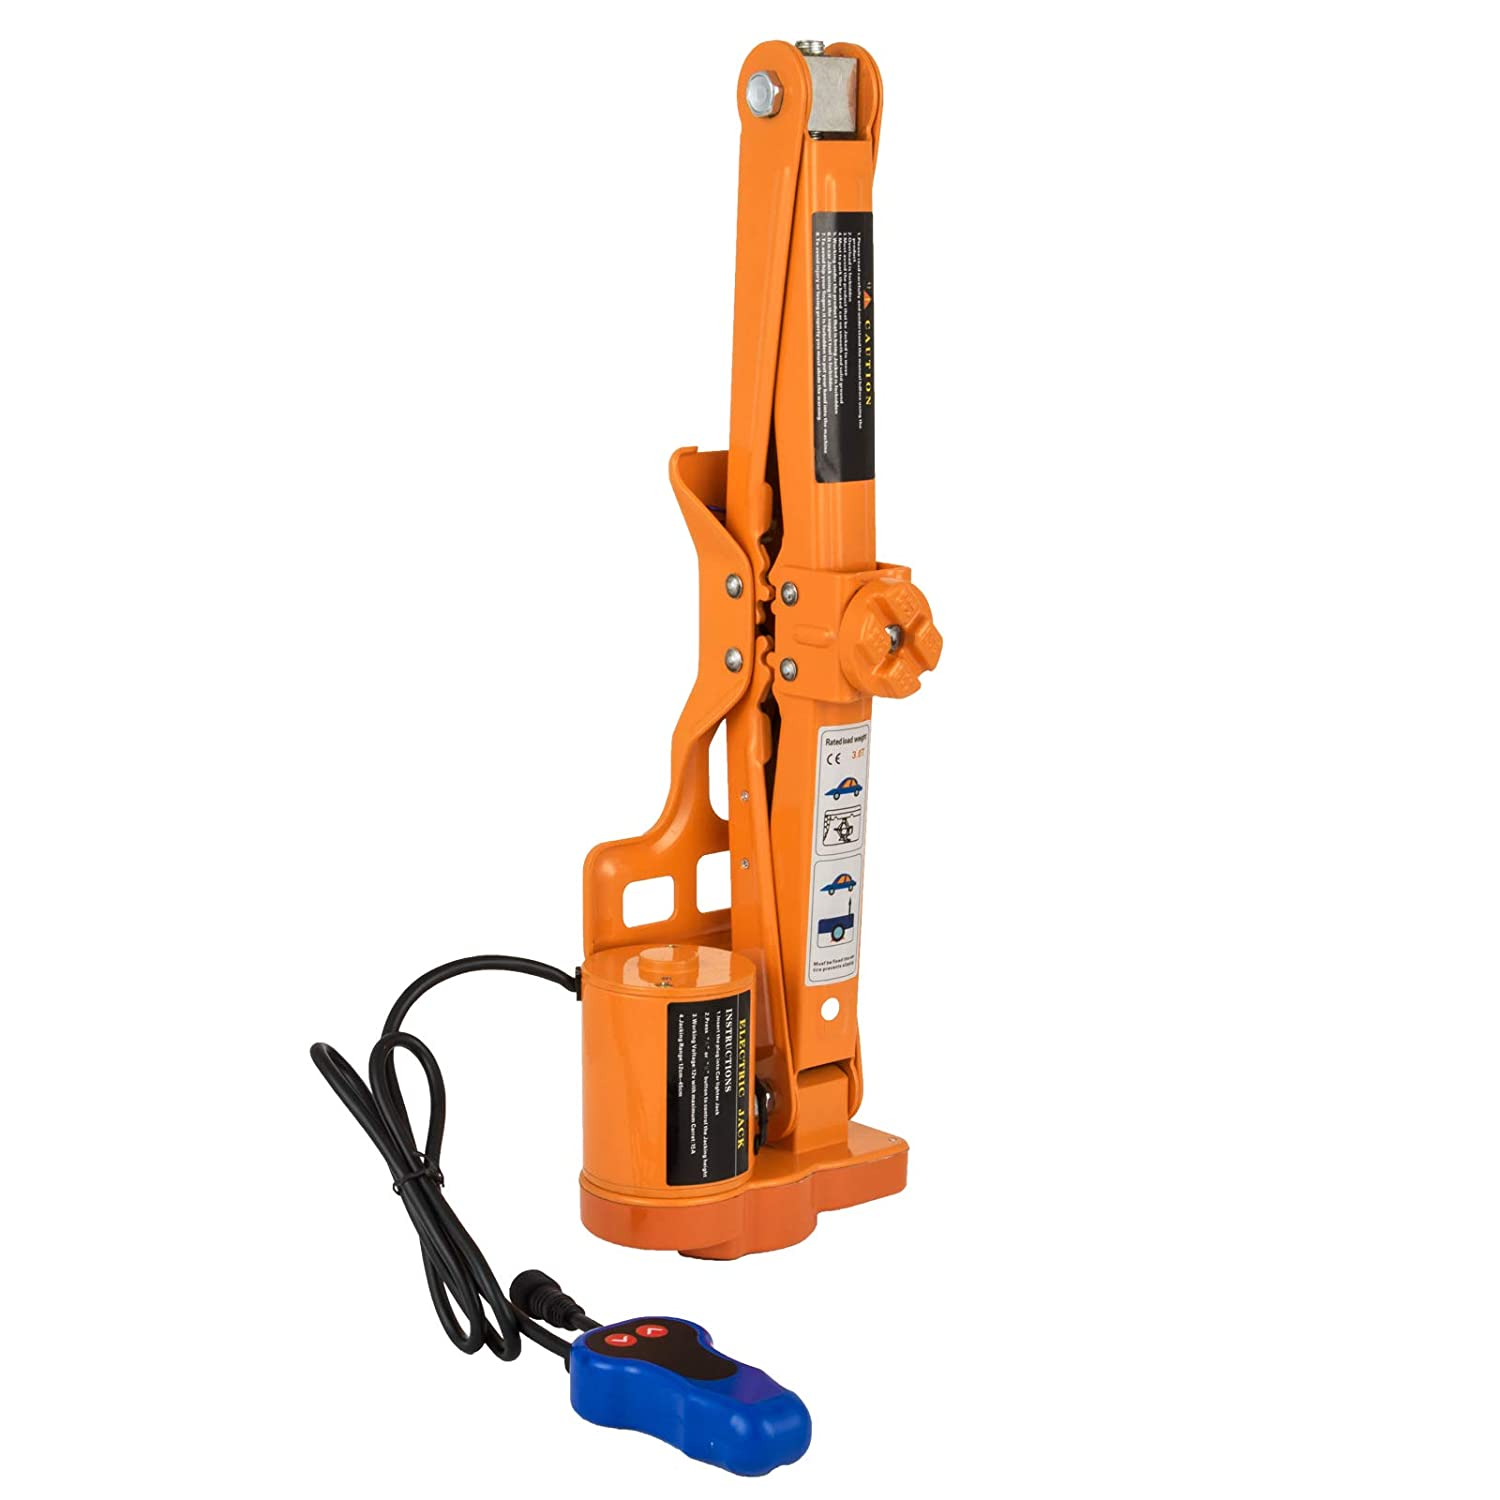 3T 6600LBS Mophorn 12V Electric Car Jack 3 Ton 6000LBS Scissor Lift Jack Electric Scissor Jack 1//2 Impact Wrench Tire Change Repair Tool